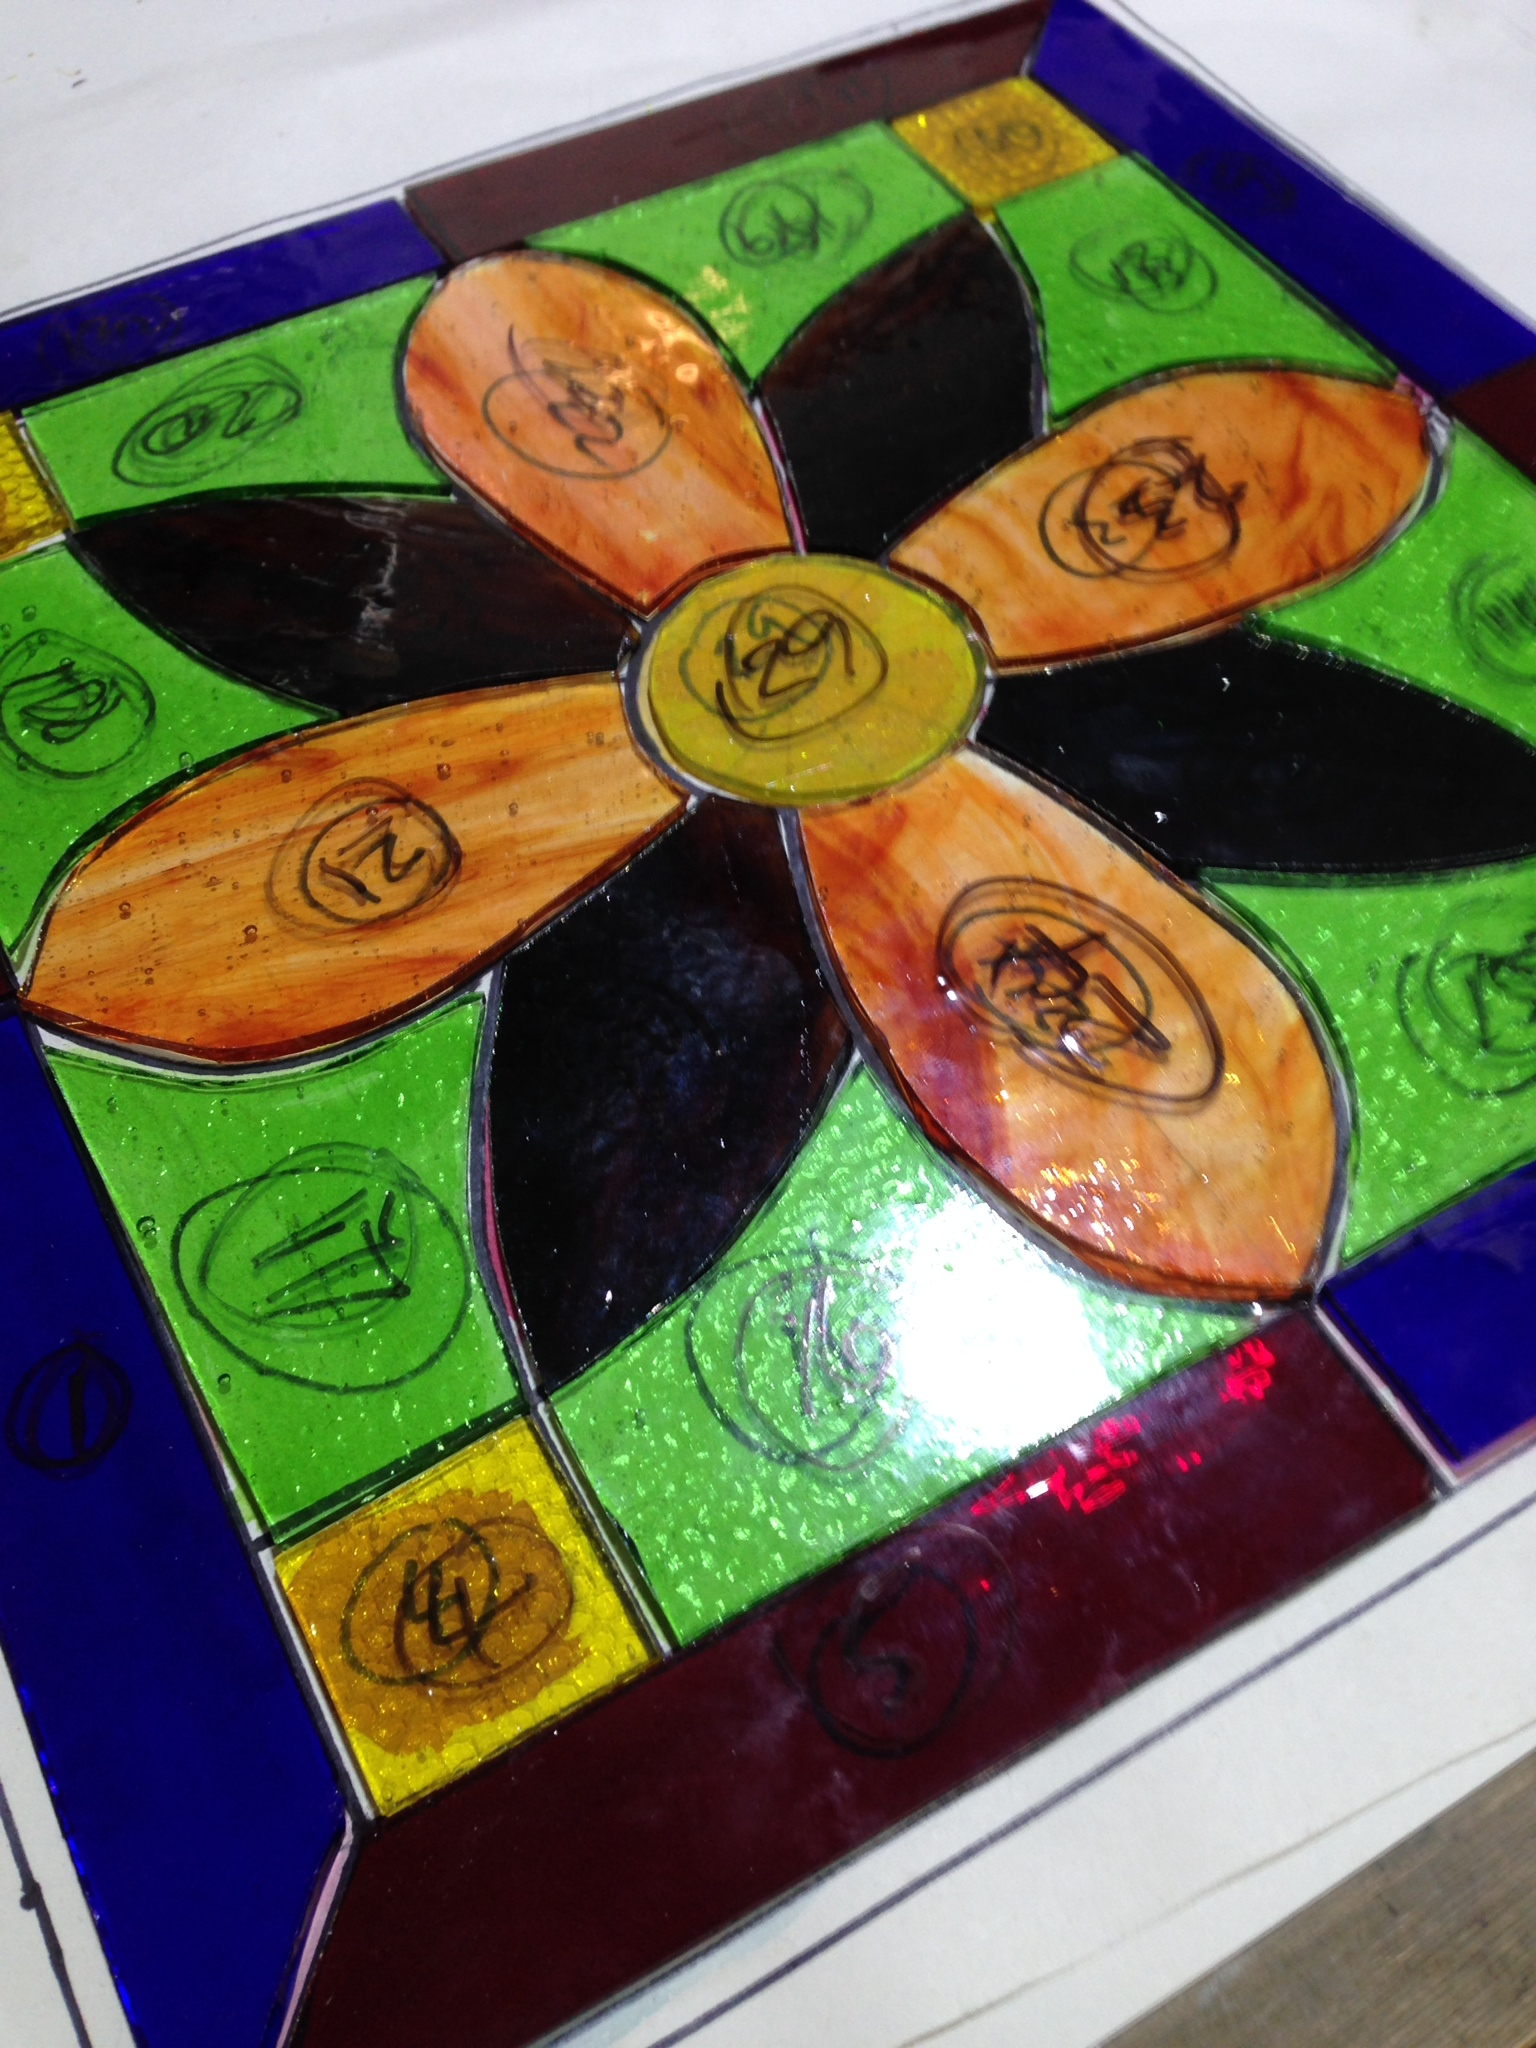 2 day stained glass workshop at crushed chilli gallery